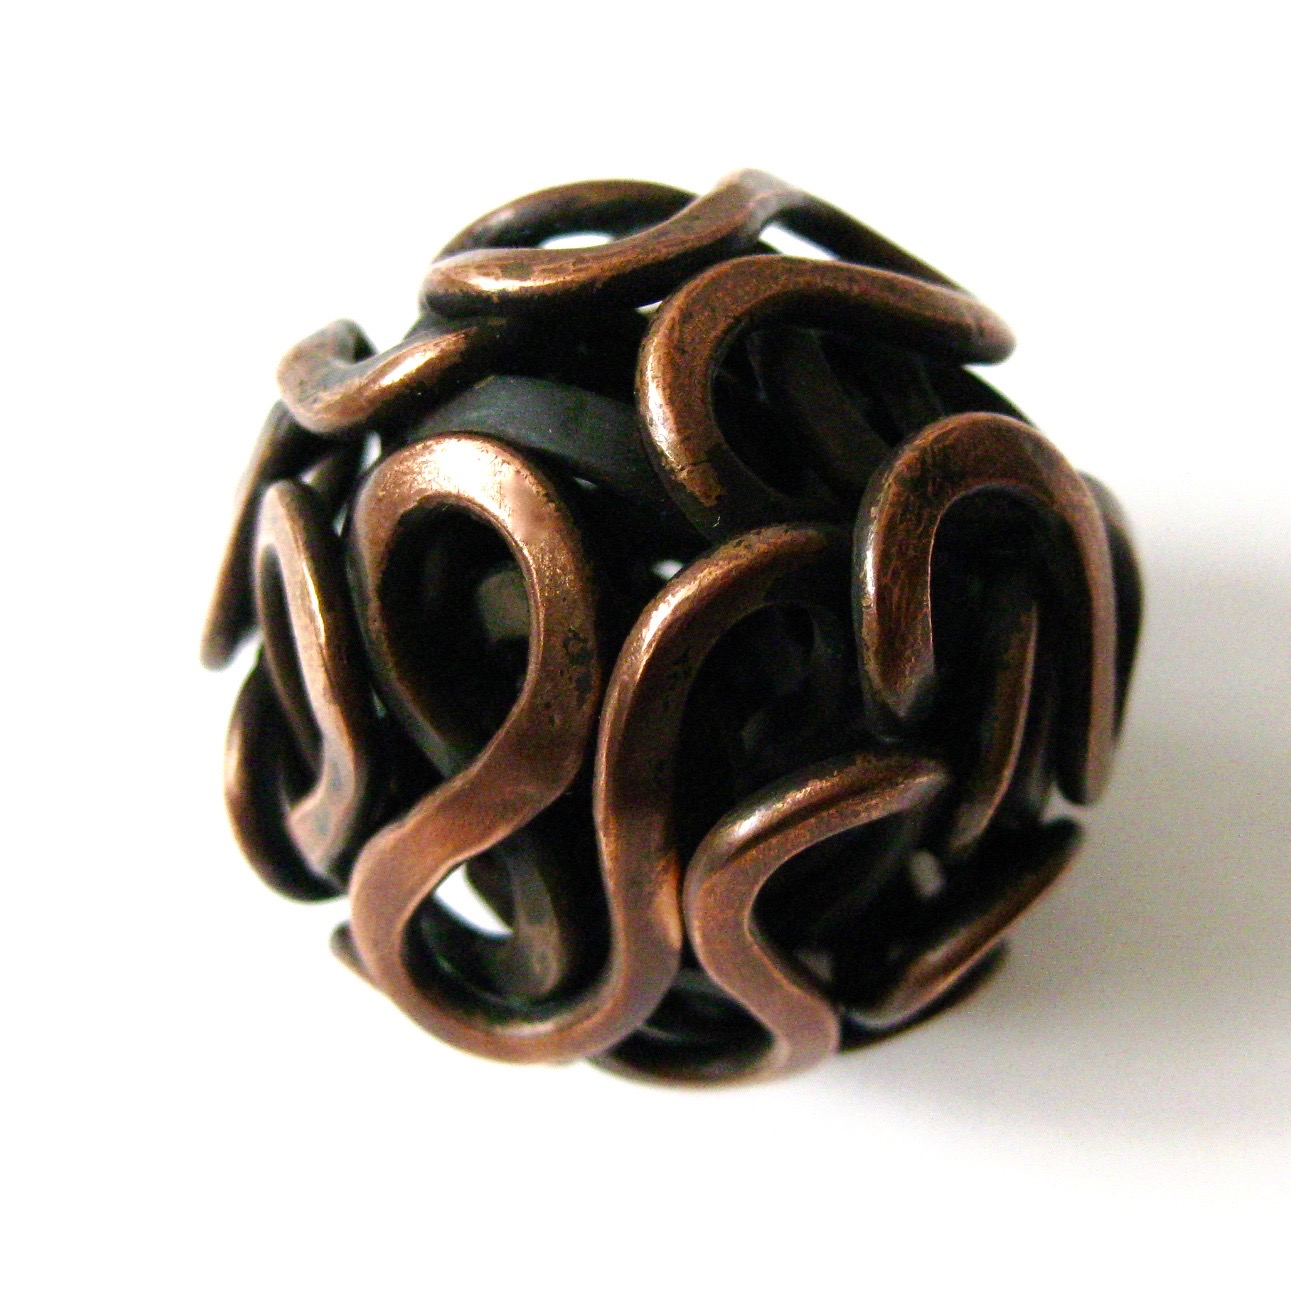 ' Muse' Handheld Woven Sculpture, 2013, Forged Oxidised Copper